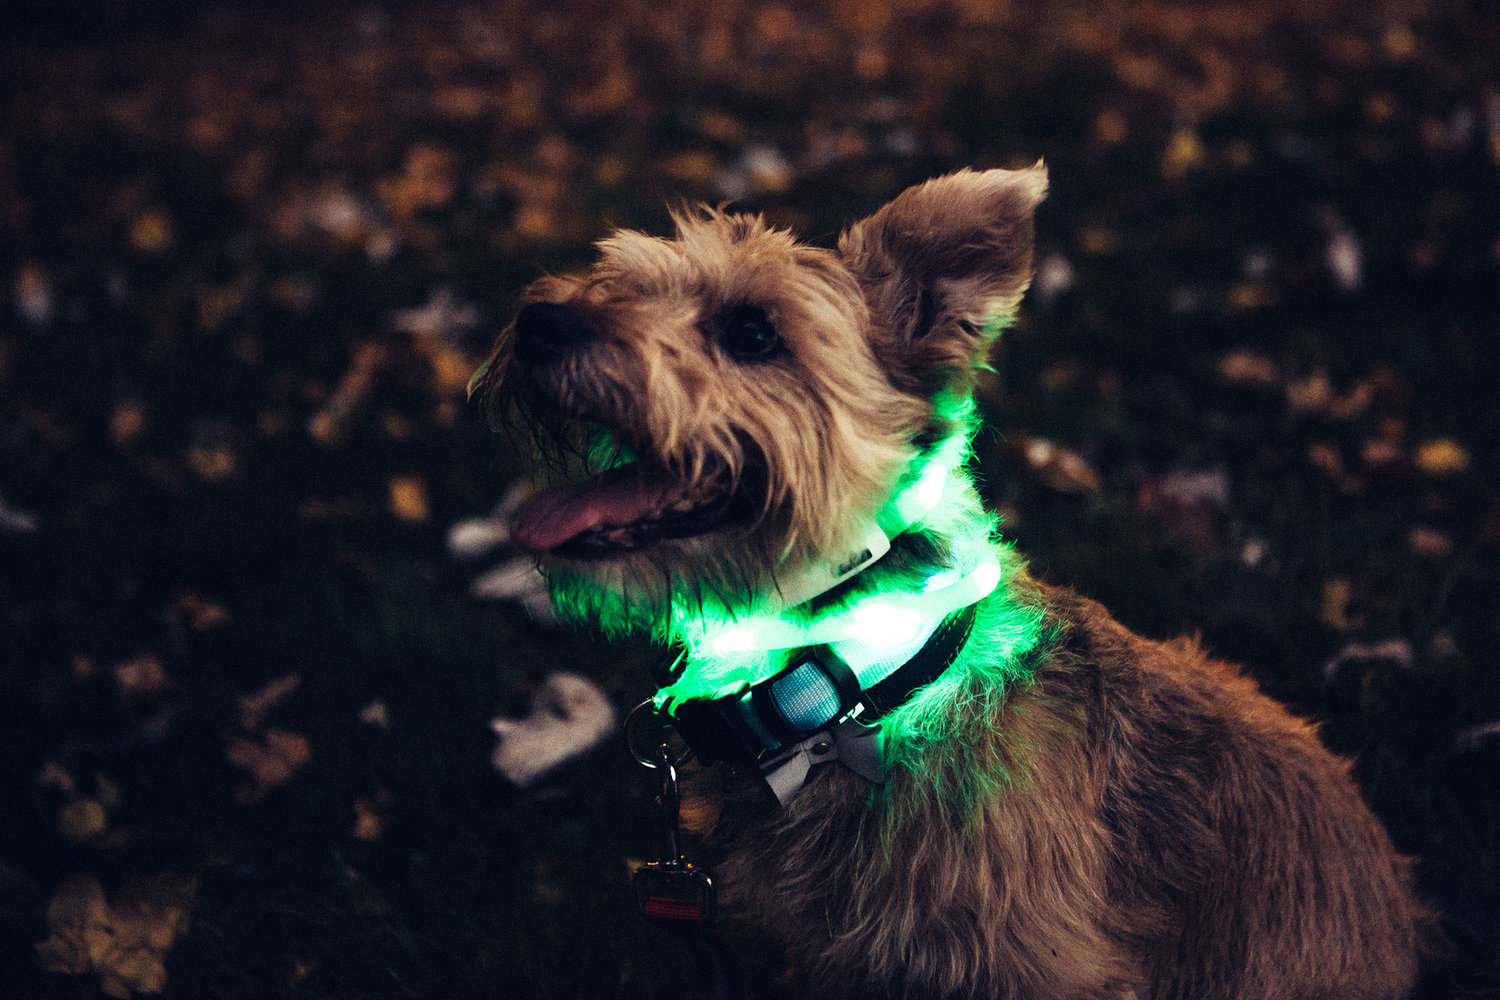 Disco Harry sporting both collars, the LED collar being wrapped around twice.